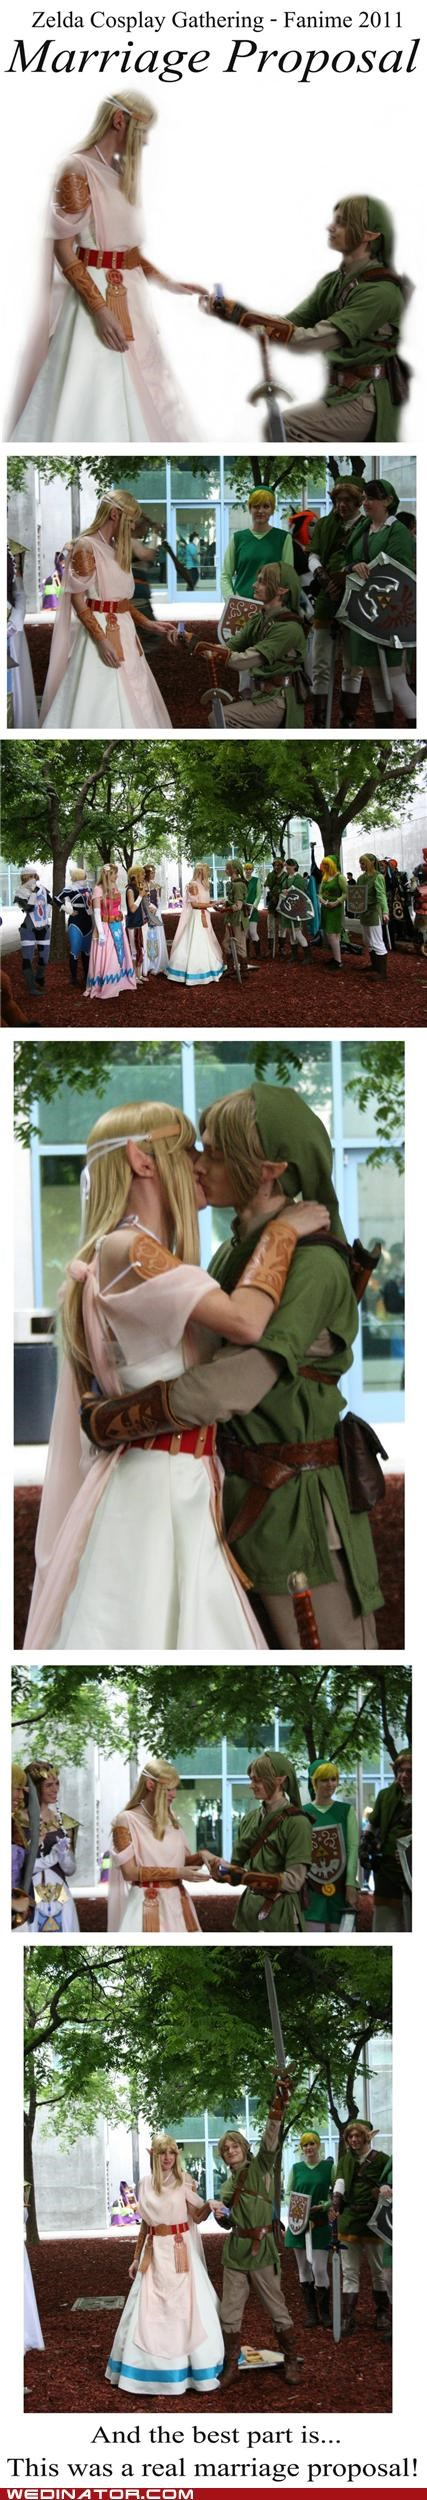 anime funny wedding videos geeks proposal the legend of zelda zelda - 4822304000